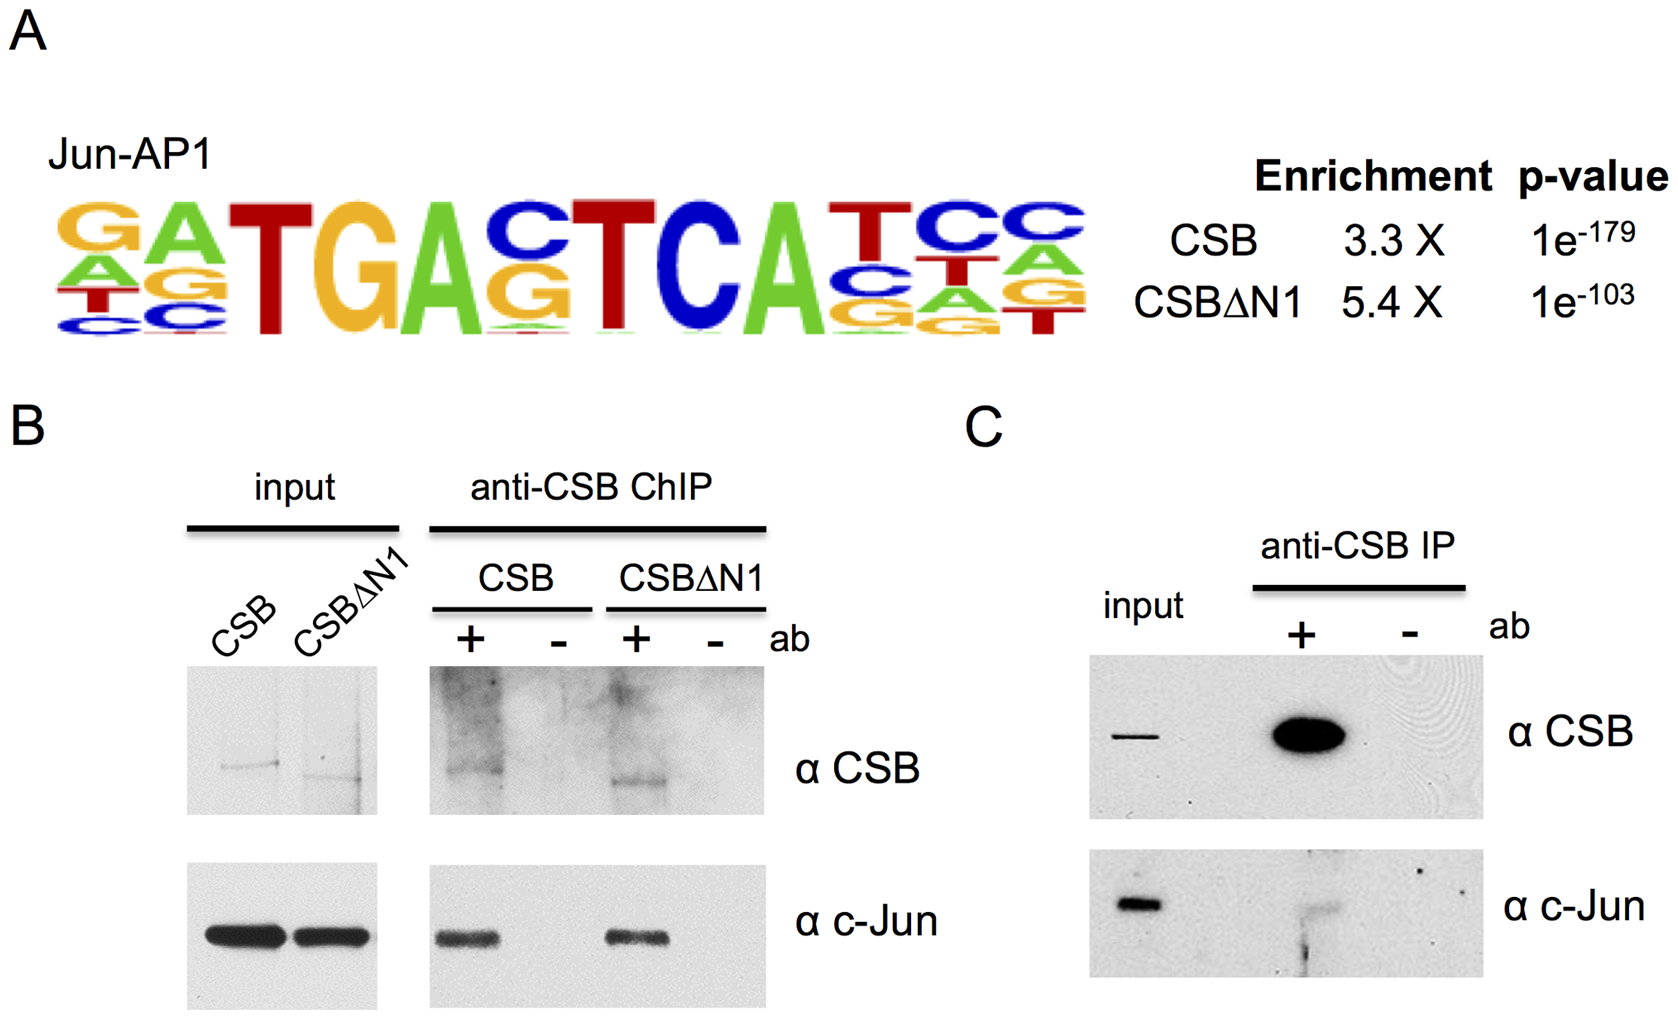 CSB and CSBΔN1 are enriched at sites containing the c-Jun/AP-1 binding motif (TPA-response element).